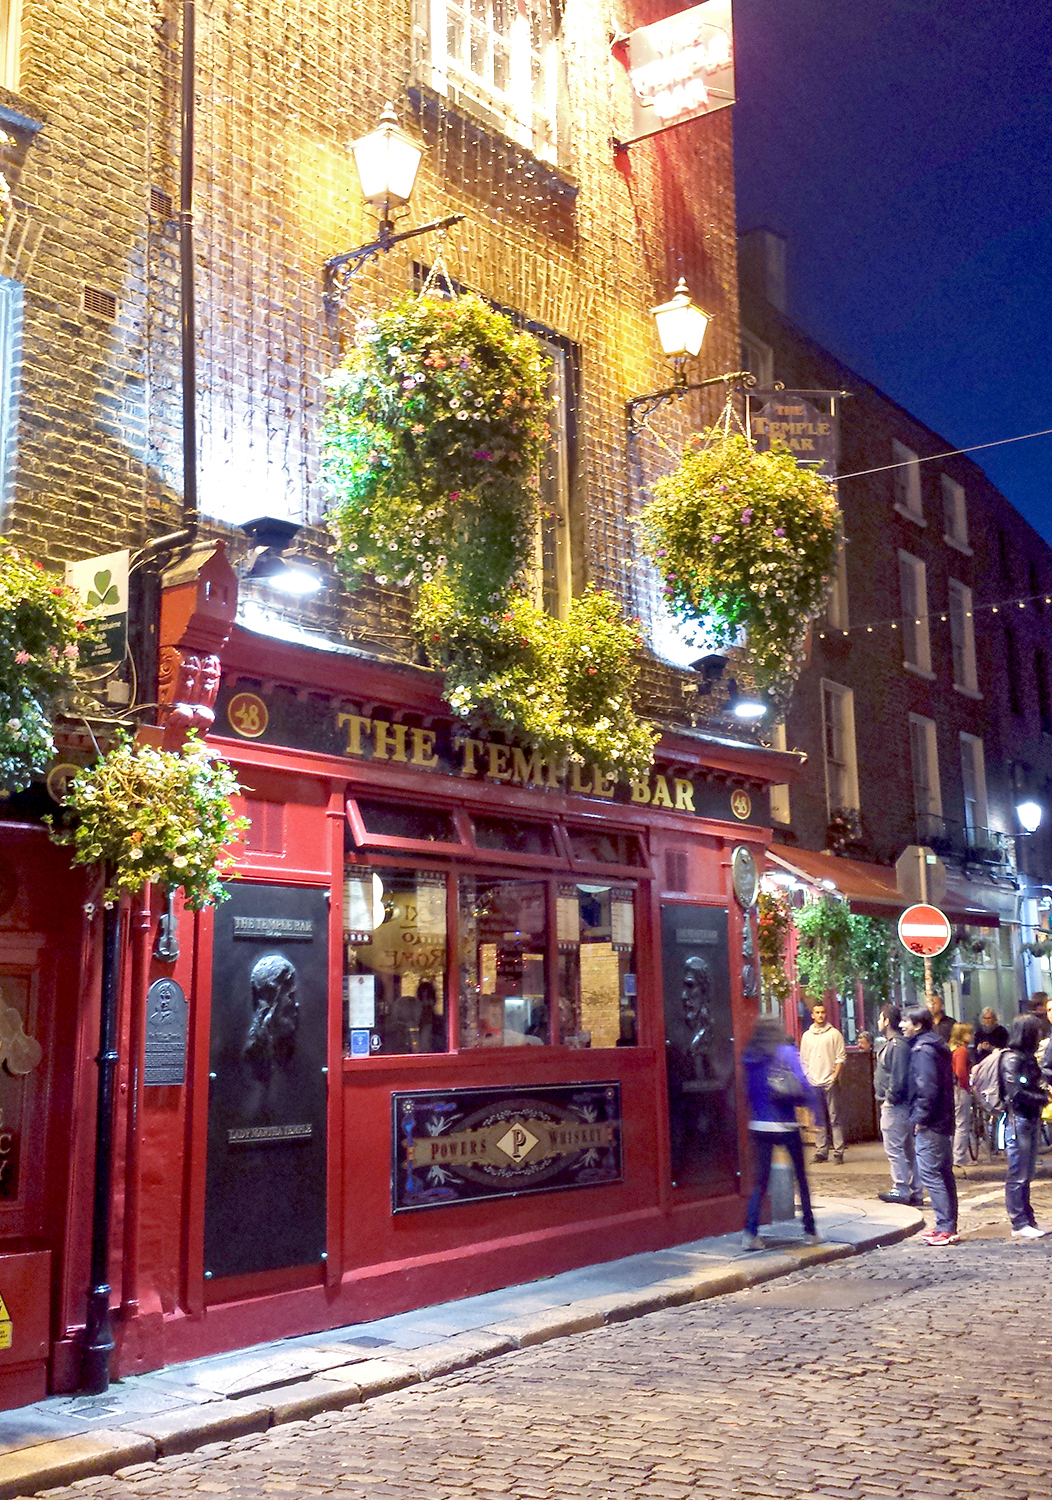 2014-09-02 Temple Bar. Dublin, Ireland